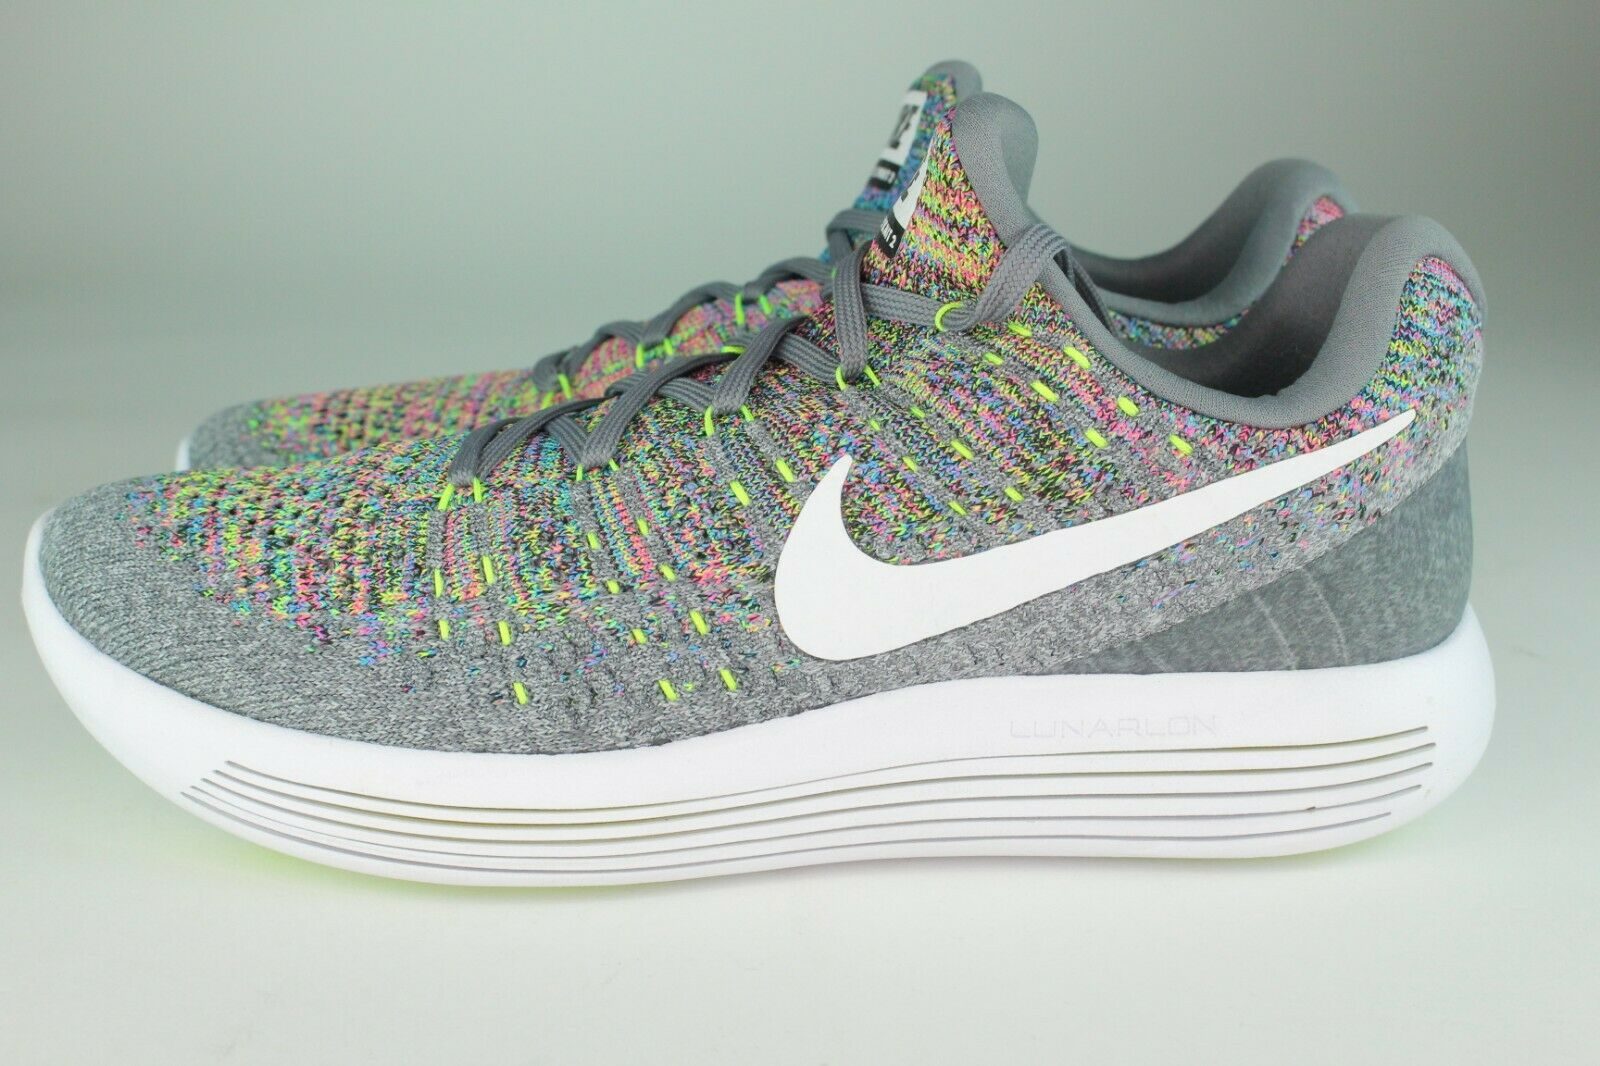 3f8d10b7aed3d Nike Lunarepic Low Flyknit 2 Mens Running Shoes 8.5 Cool Grey White ...